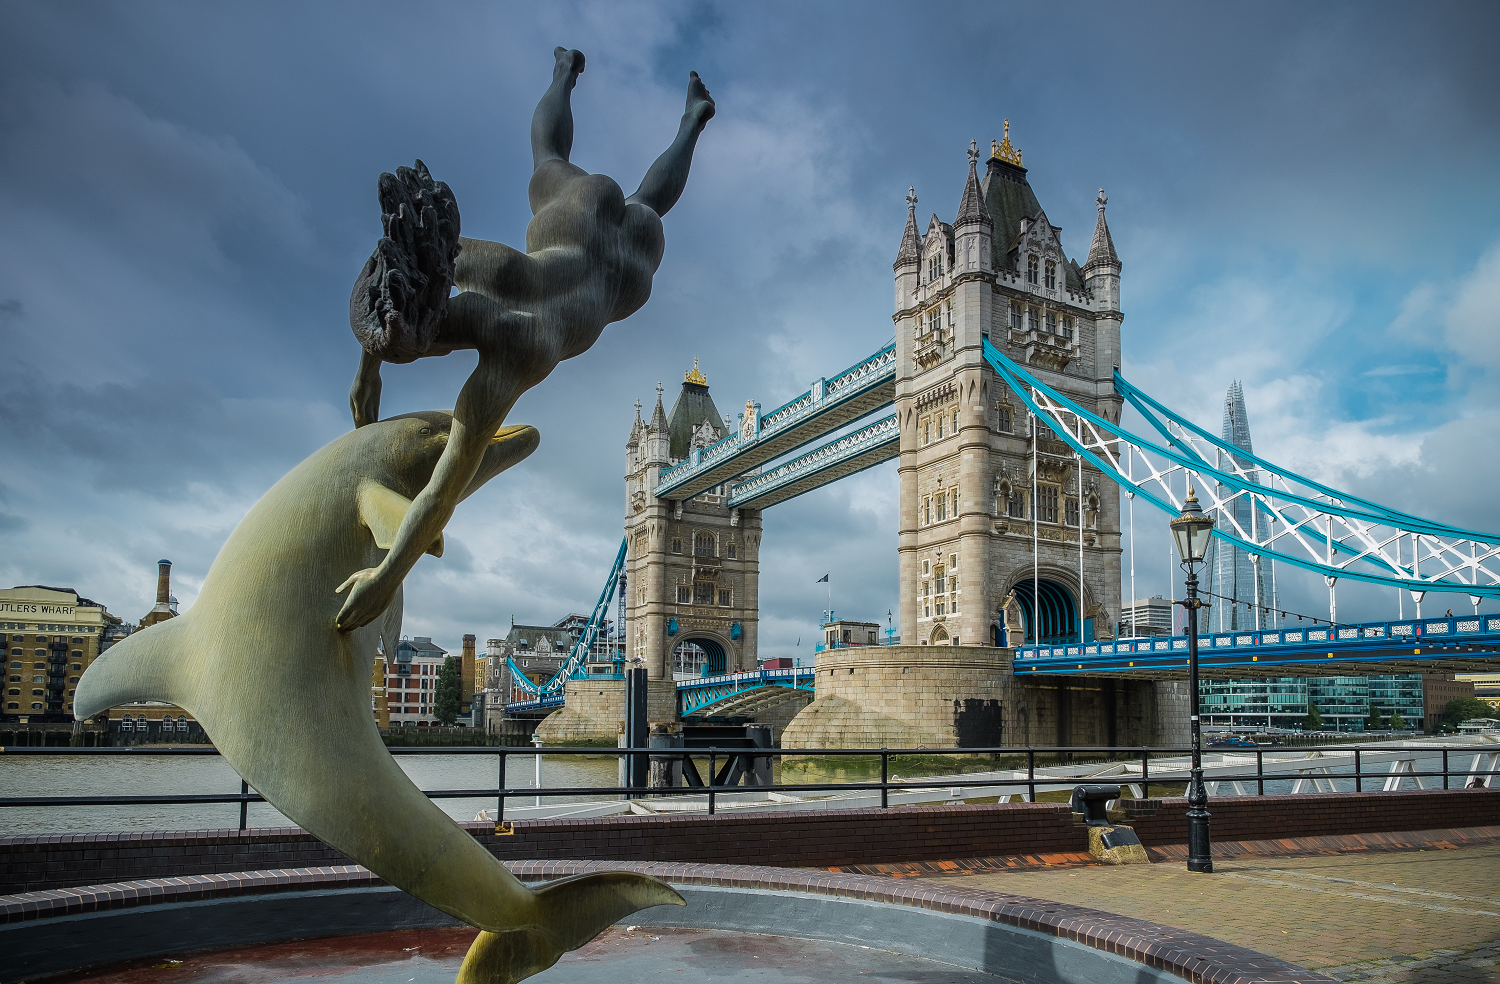 The Dolphin Statue and Tower Bridge London